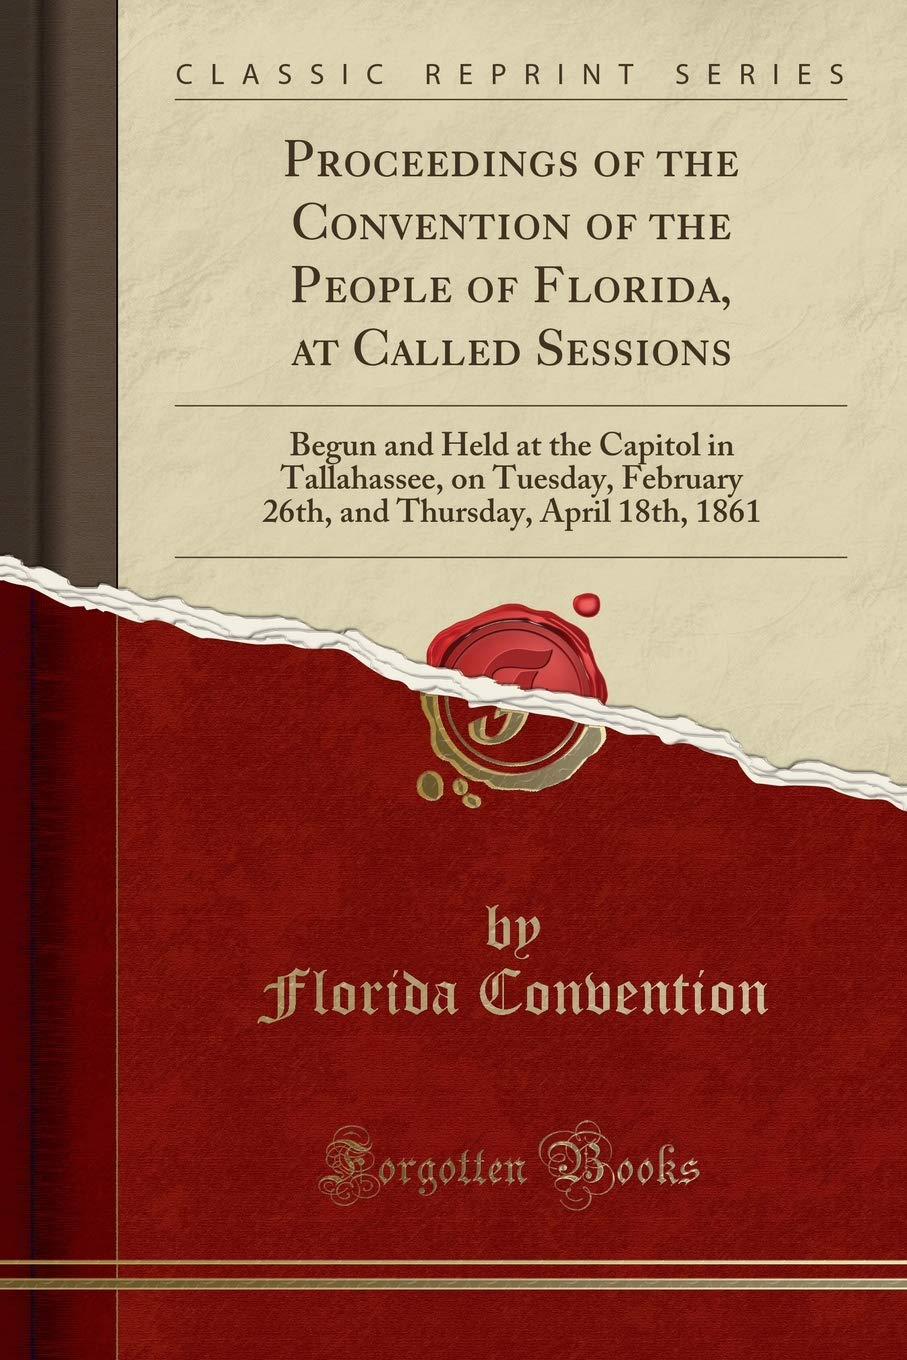 Read Online Proceedings of the Convention of the People of Florida, at Called Sessions: Begun and Held at the Capitol in Tallahassee, on Tuesday, February 26th, and Thursday, April 18th, 1861 (Classic Reprint) pdf epub